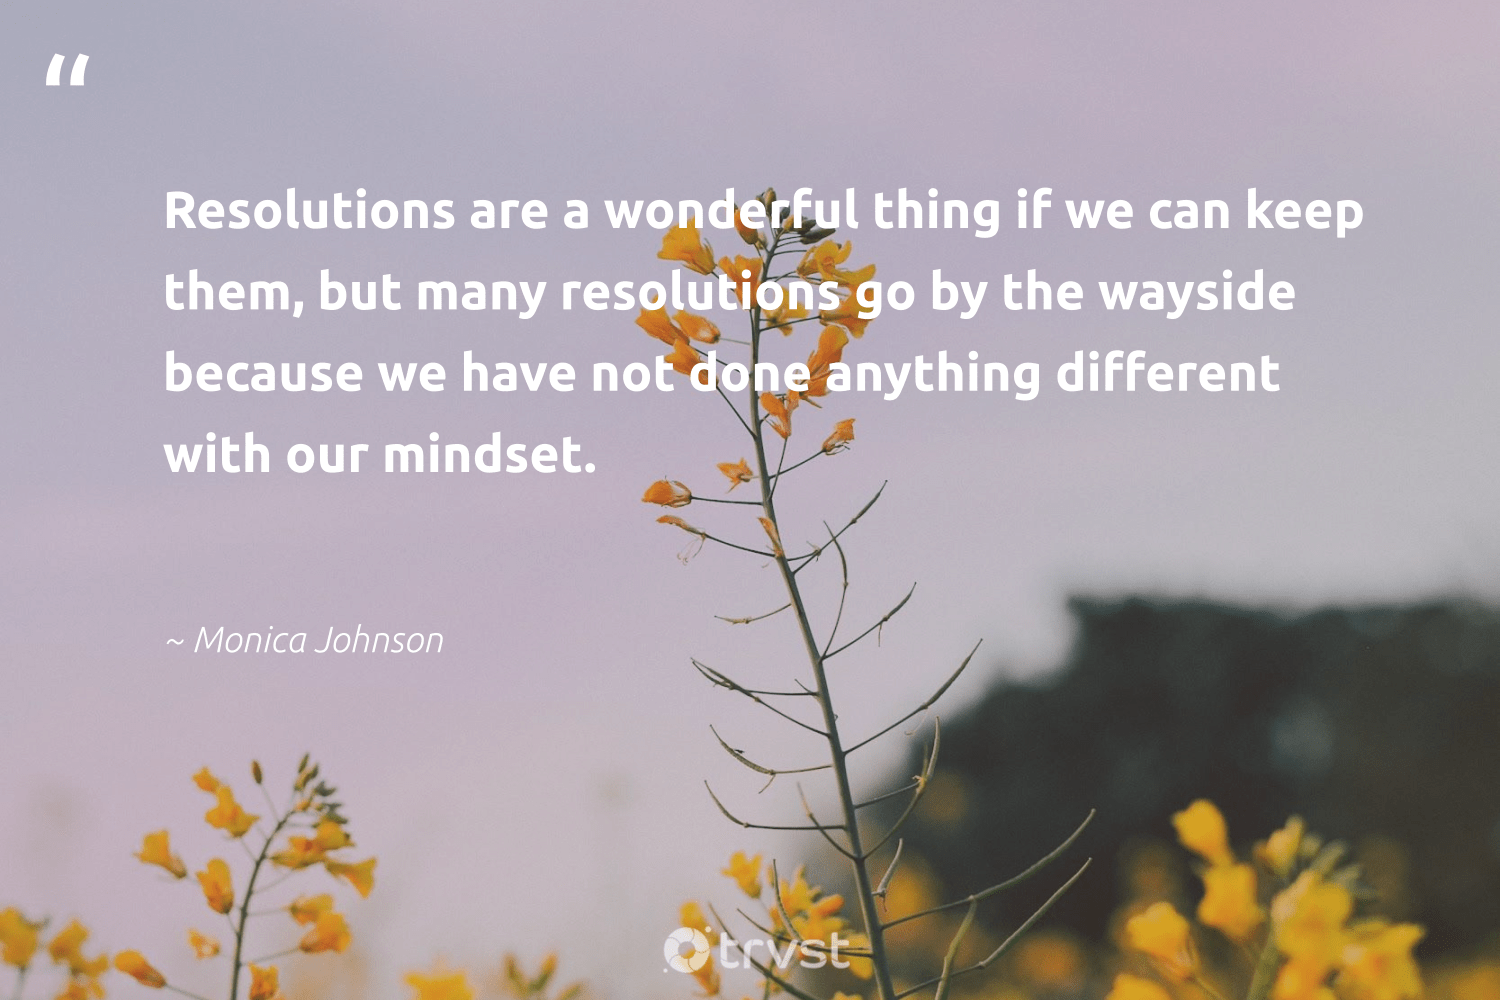 """""""Resolutions are a wonderful thing if we can keep them, but many resolutions go by the wayside because we have not done anything different with our mindset.""""  - Monica Johnson #trvst #quotes #mindset #motivation #nevergiveup #begreat #dogood #mindfulness #changemakers #togetherwecan #bethechange #meditation"""